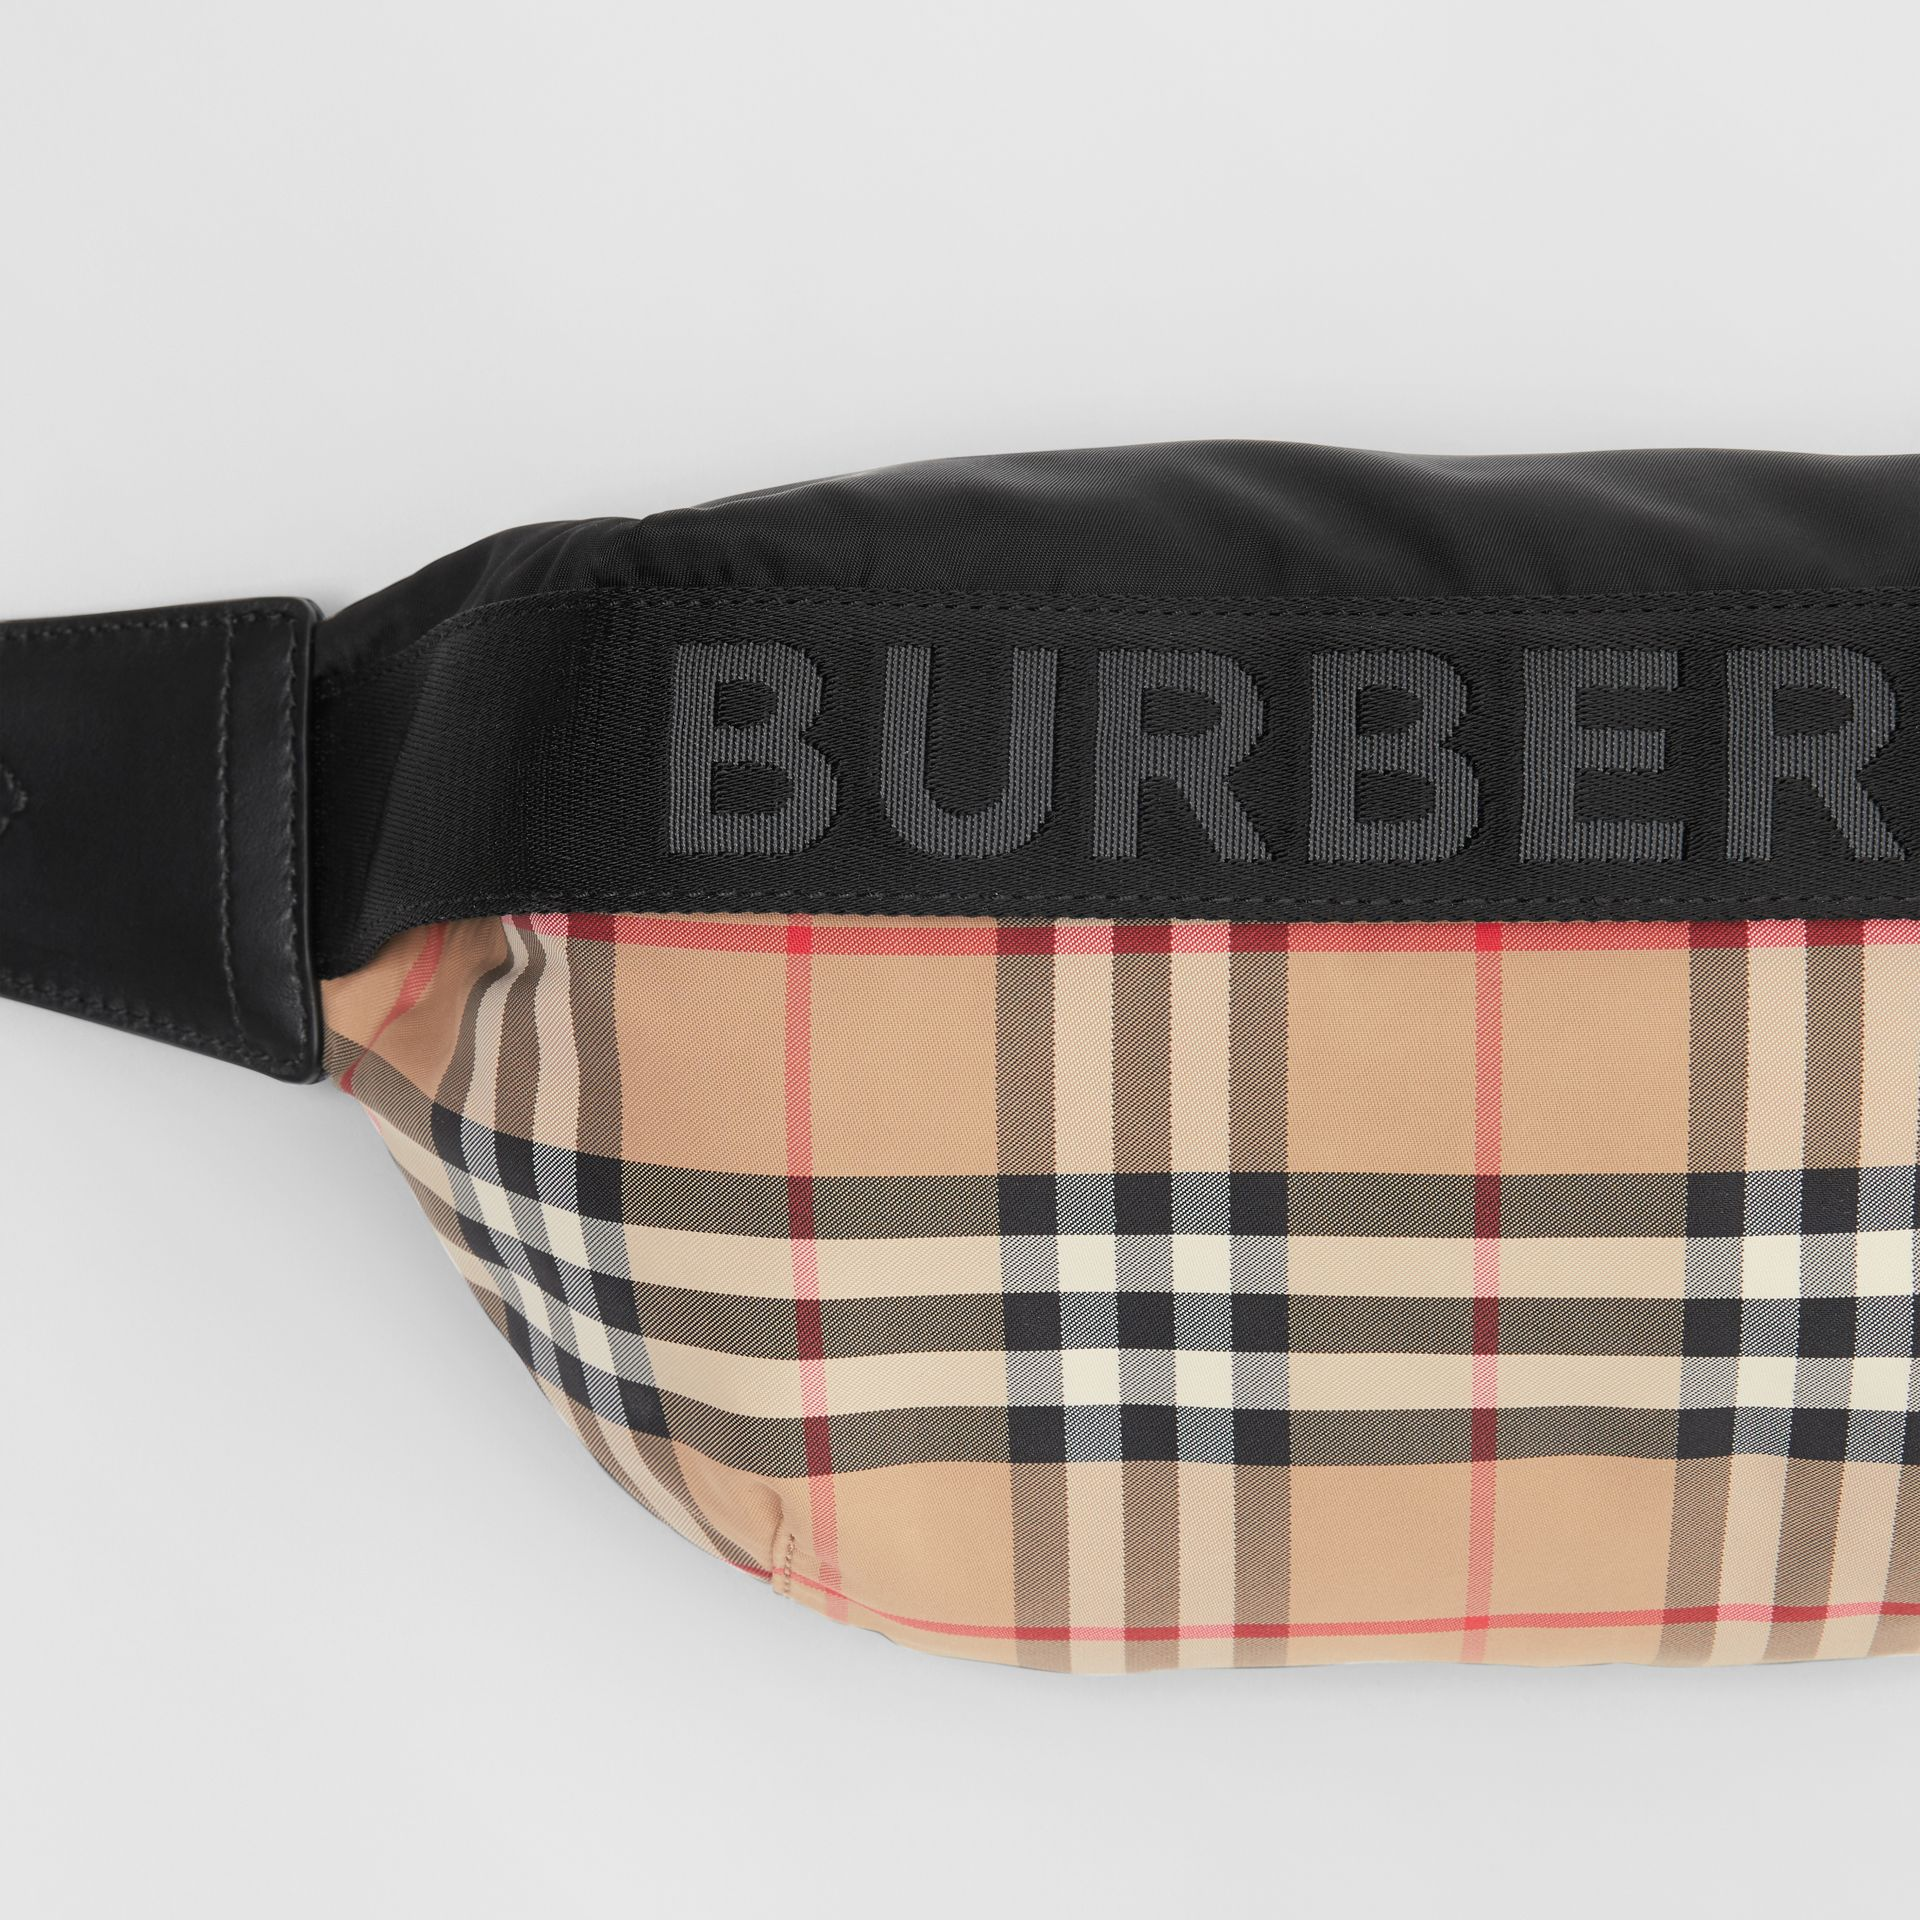 Medium Vintage Check Bum Bag in Archive Beige | Burberry - gallery image 1